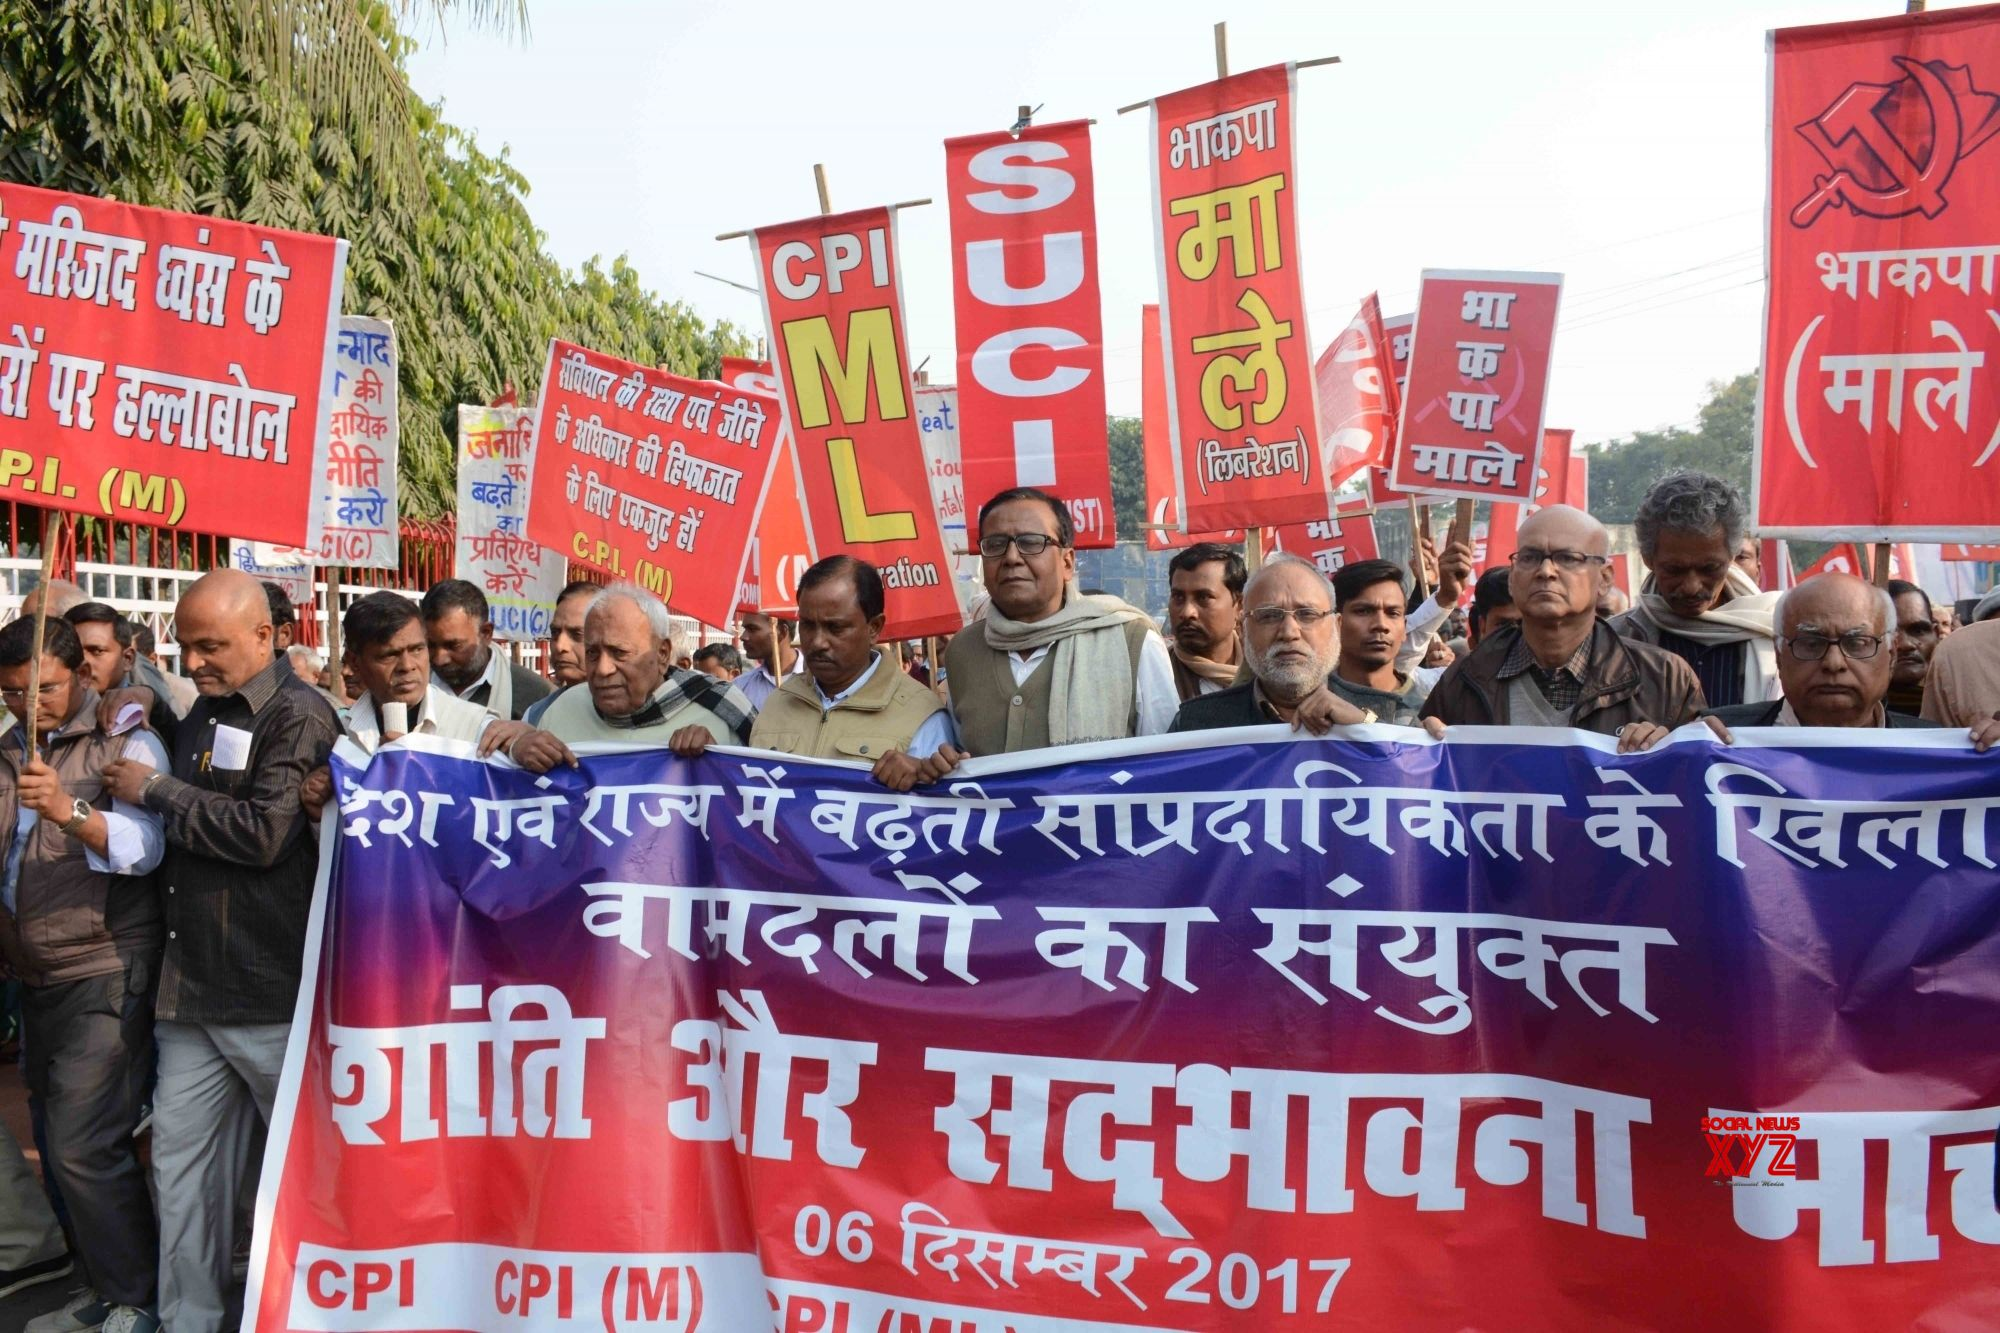 Patna: 25th anniversary of Babri Masjid demolition   Left parties march